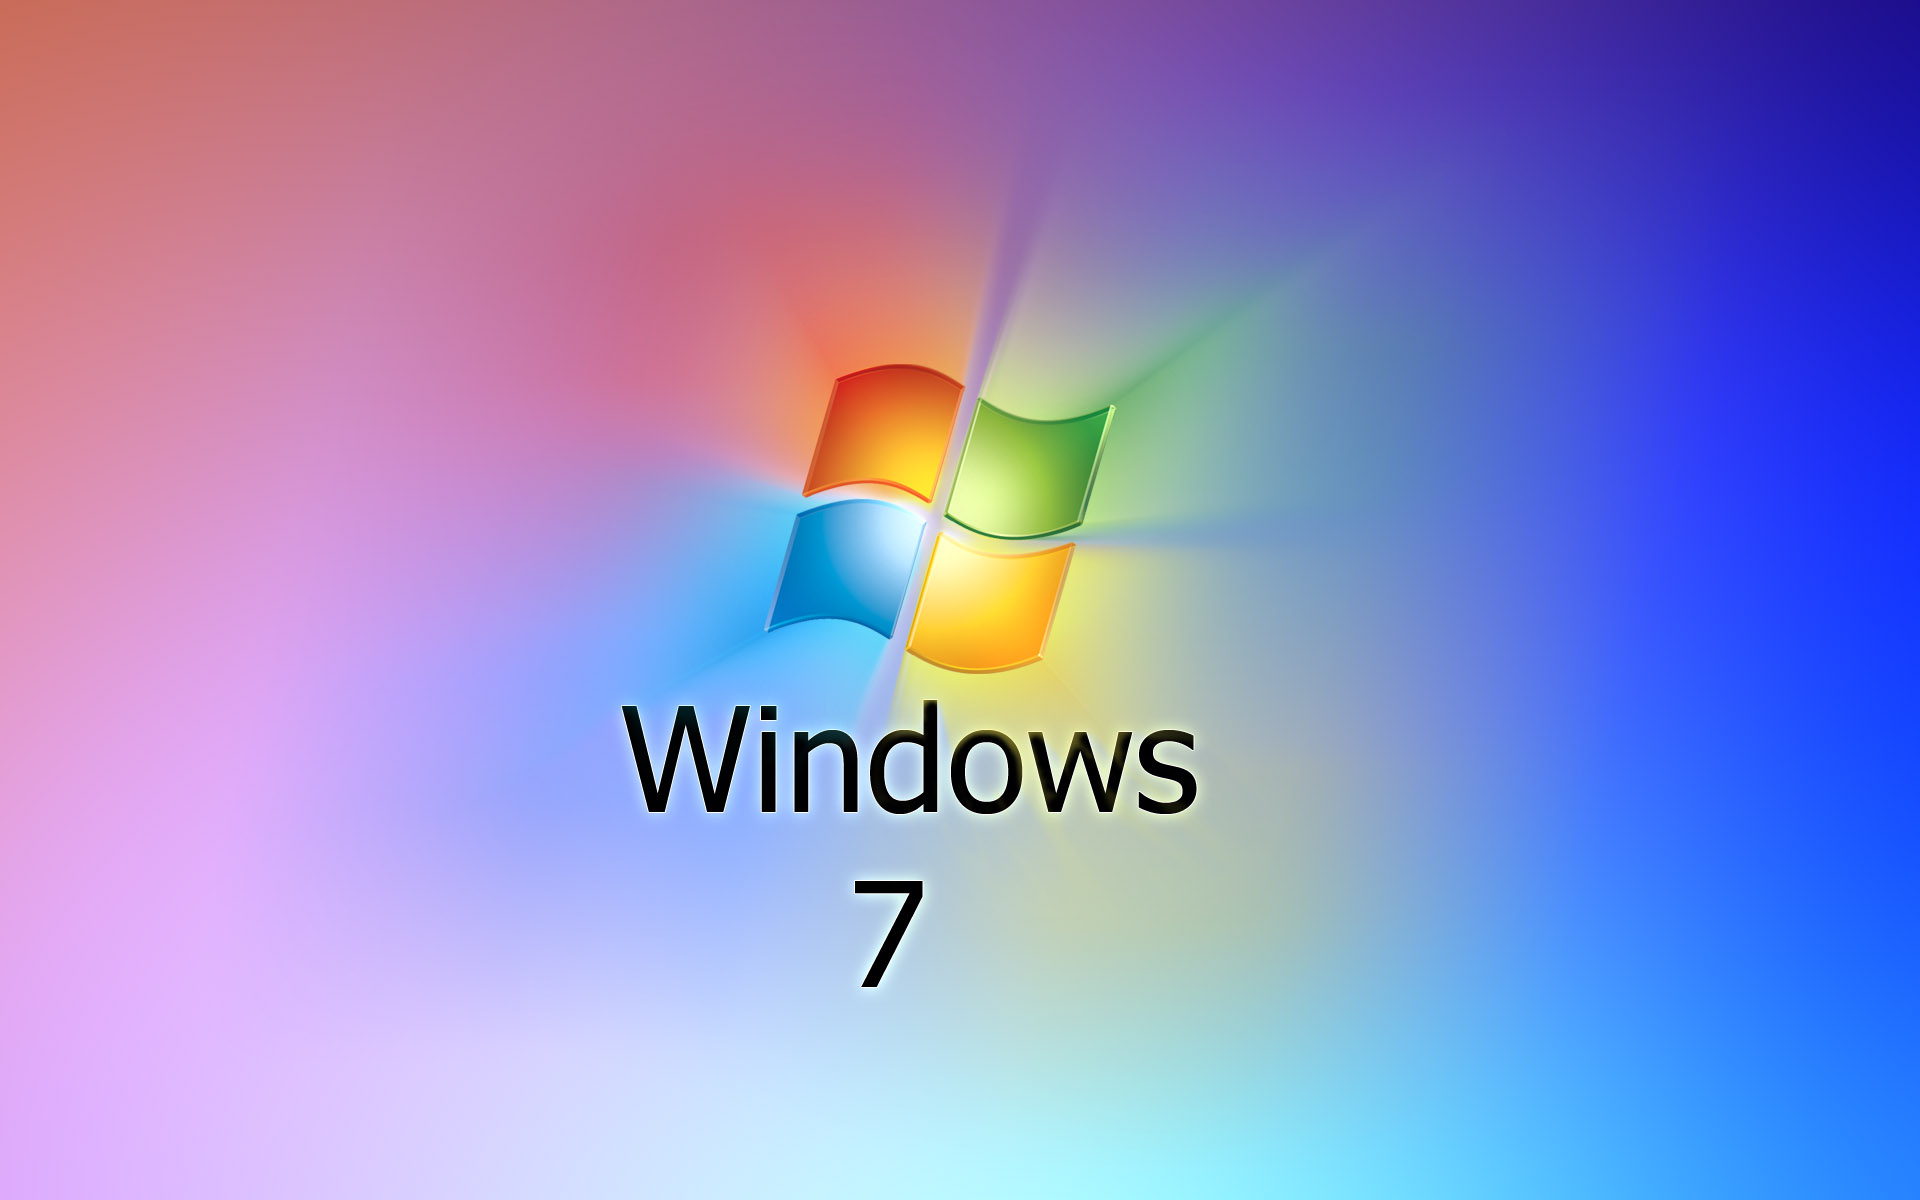 Windows Desktop Wallpaper 4279